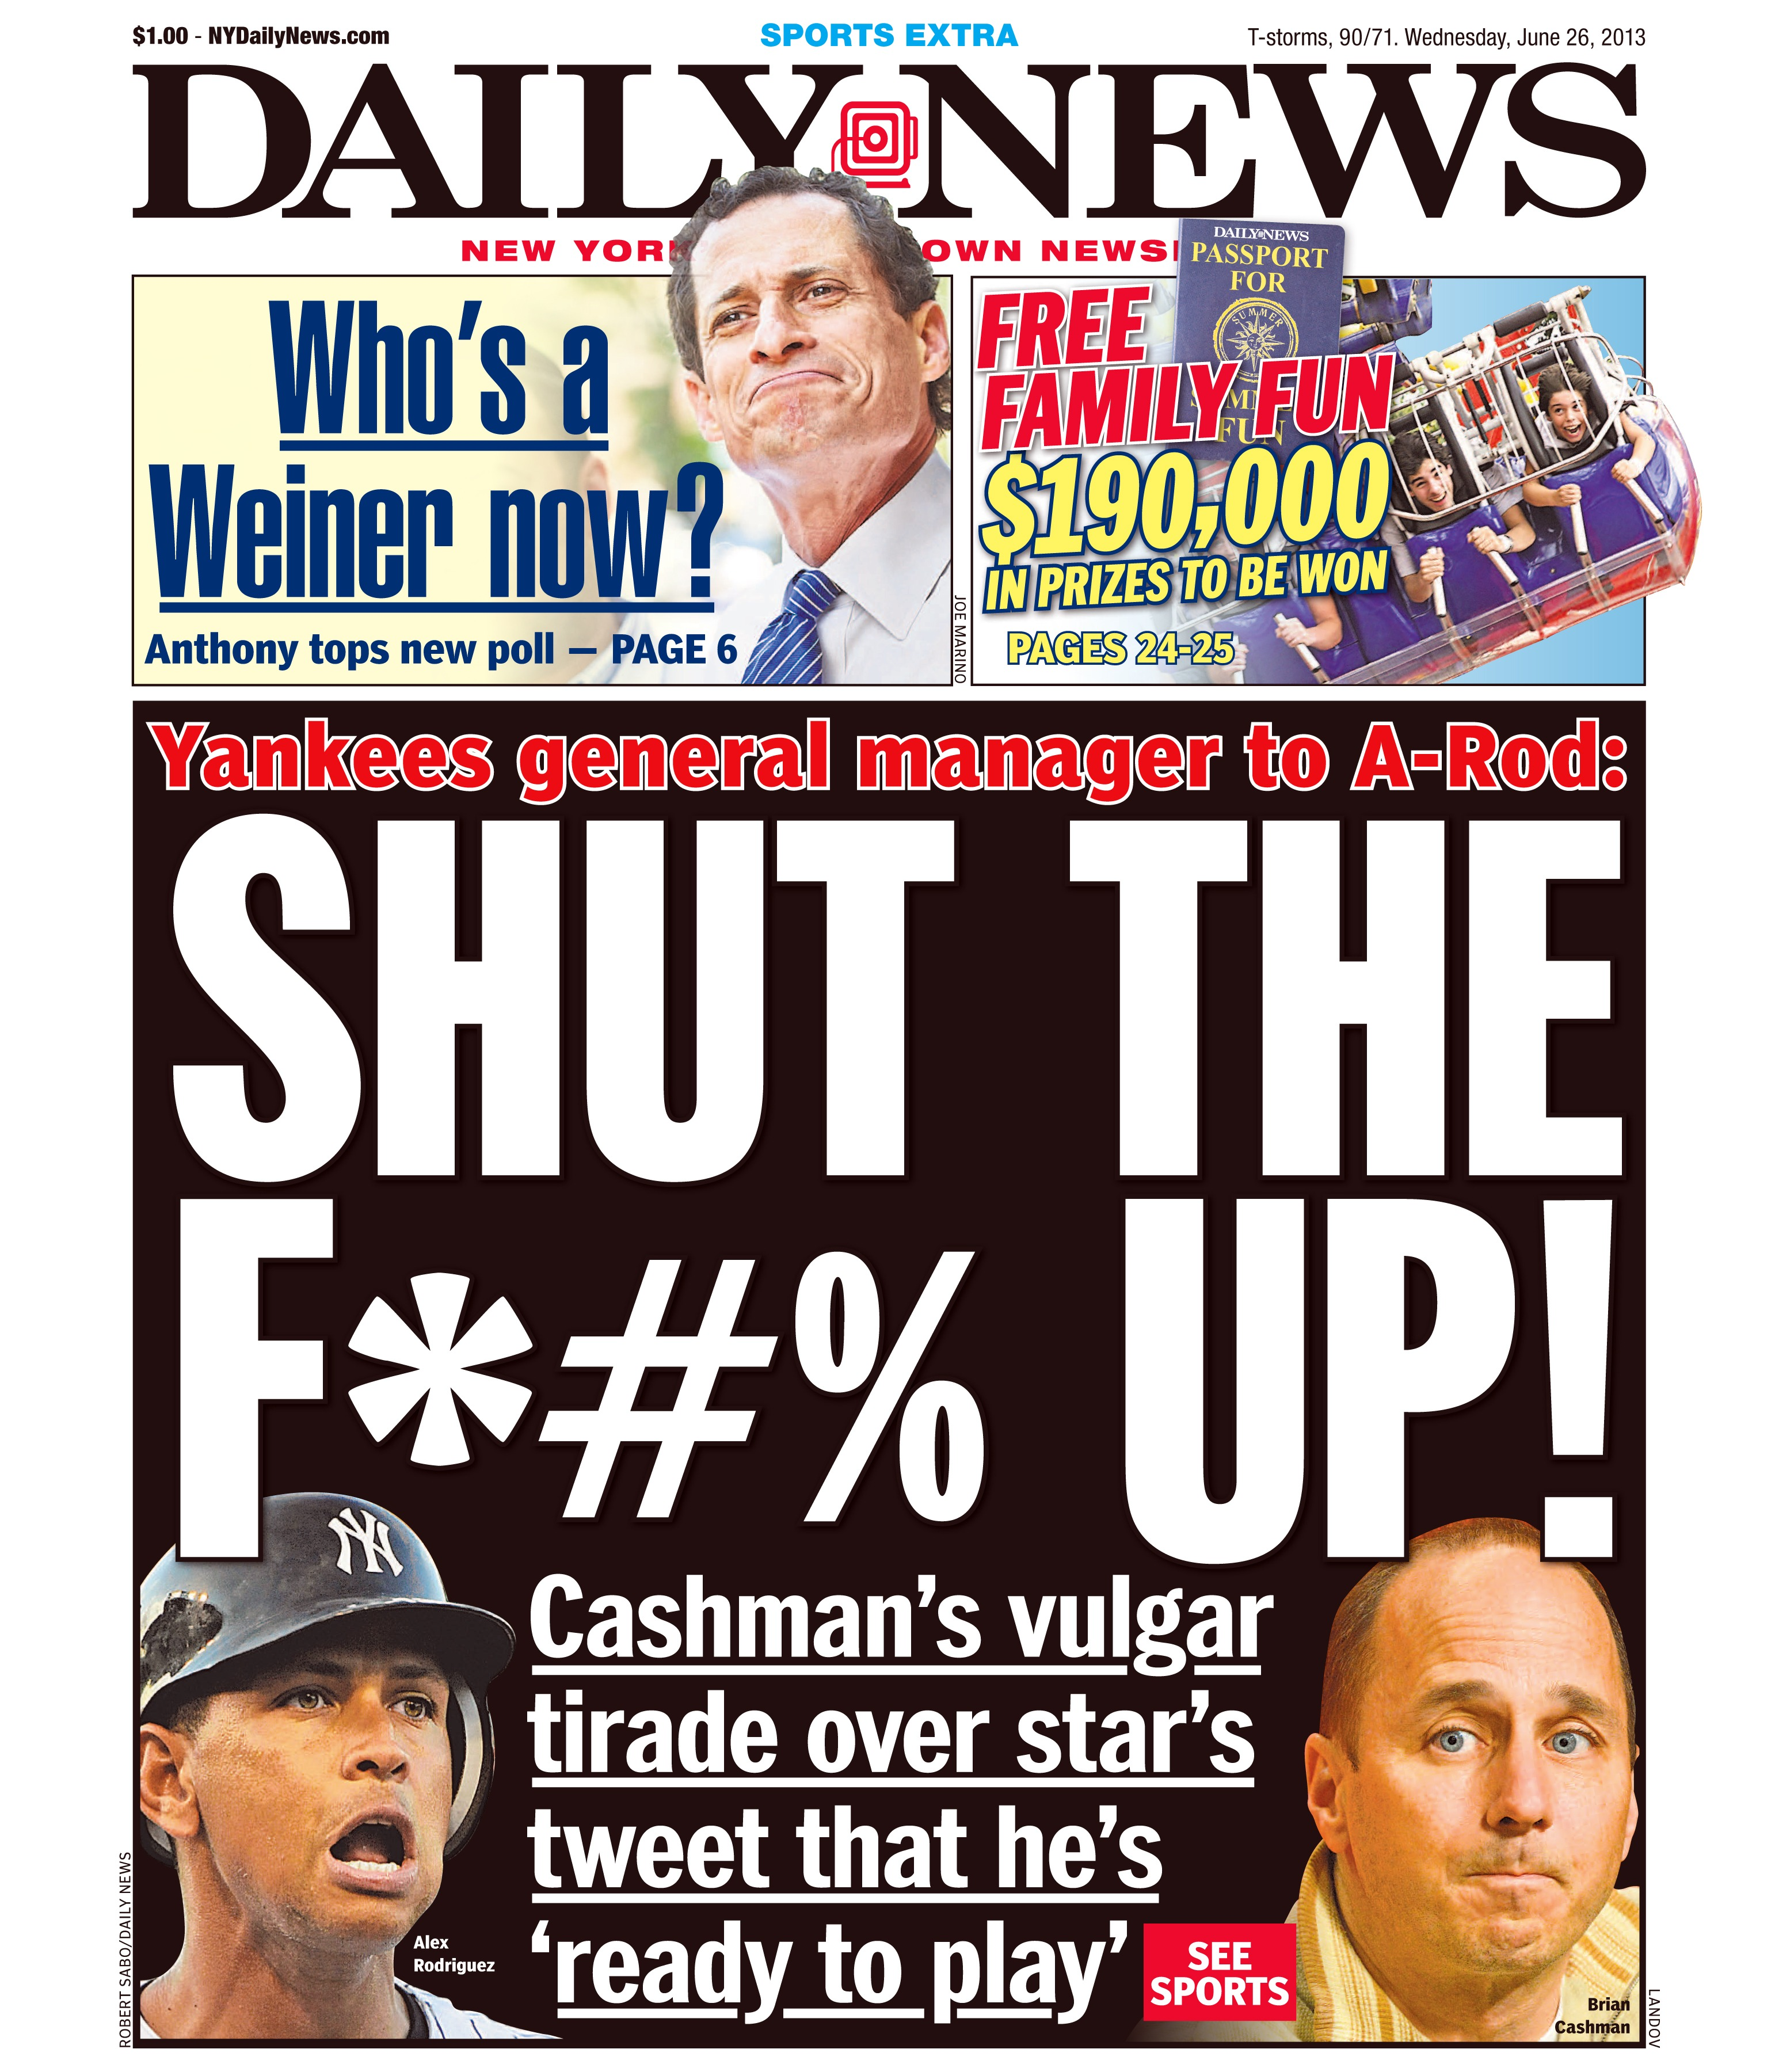 Cashman's tirade against Alex Rodriguez was front-page news and perfect tabloid fodder.